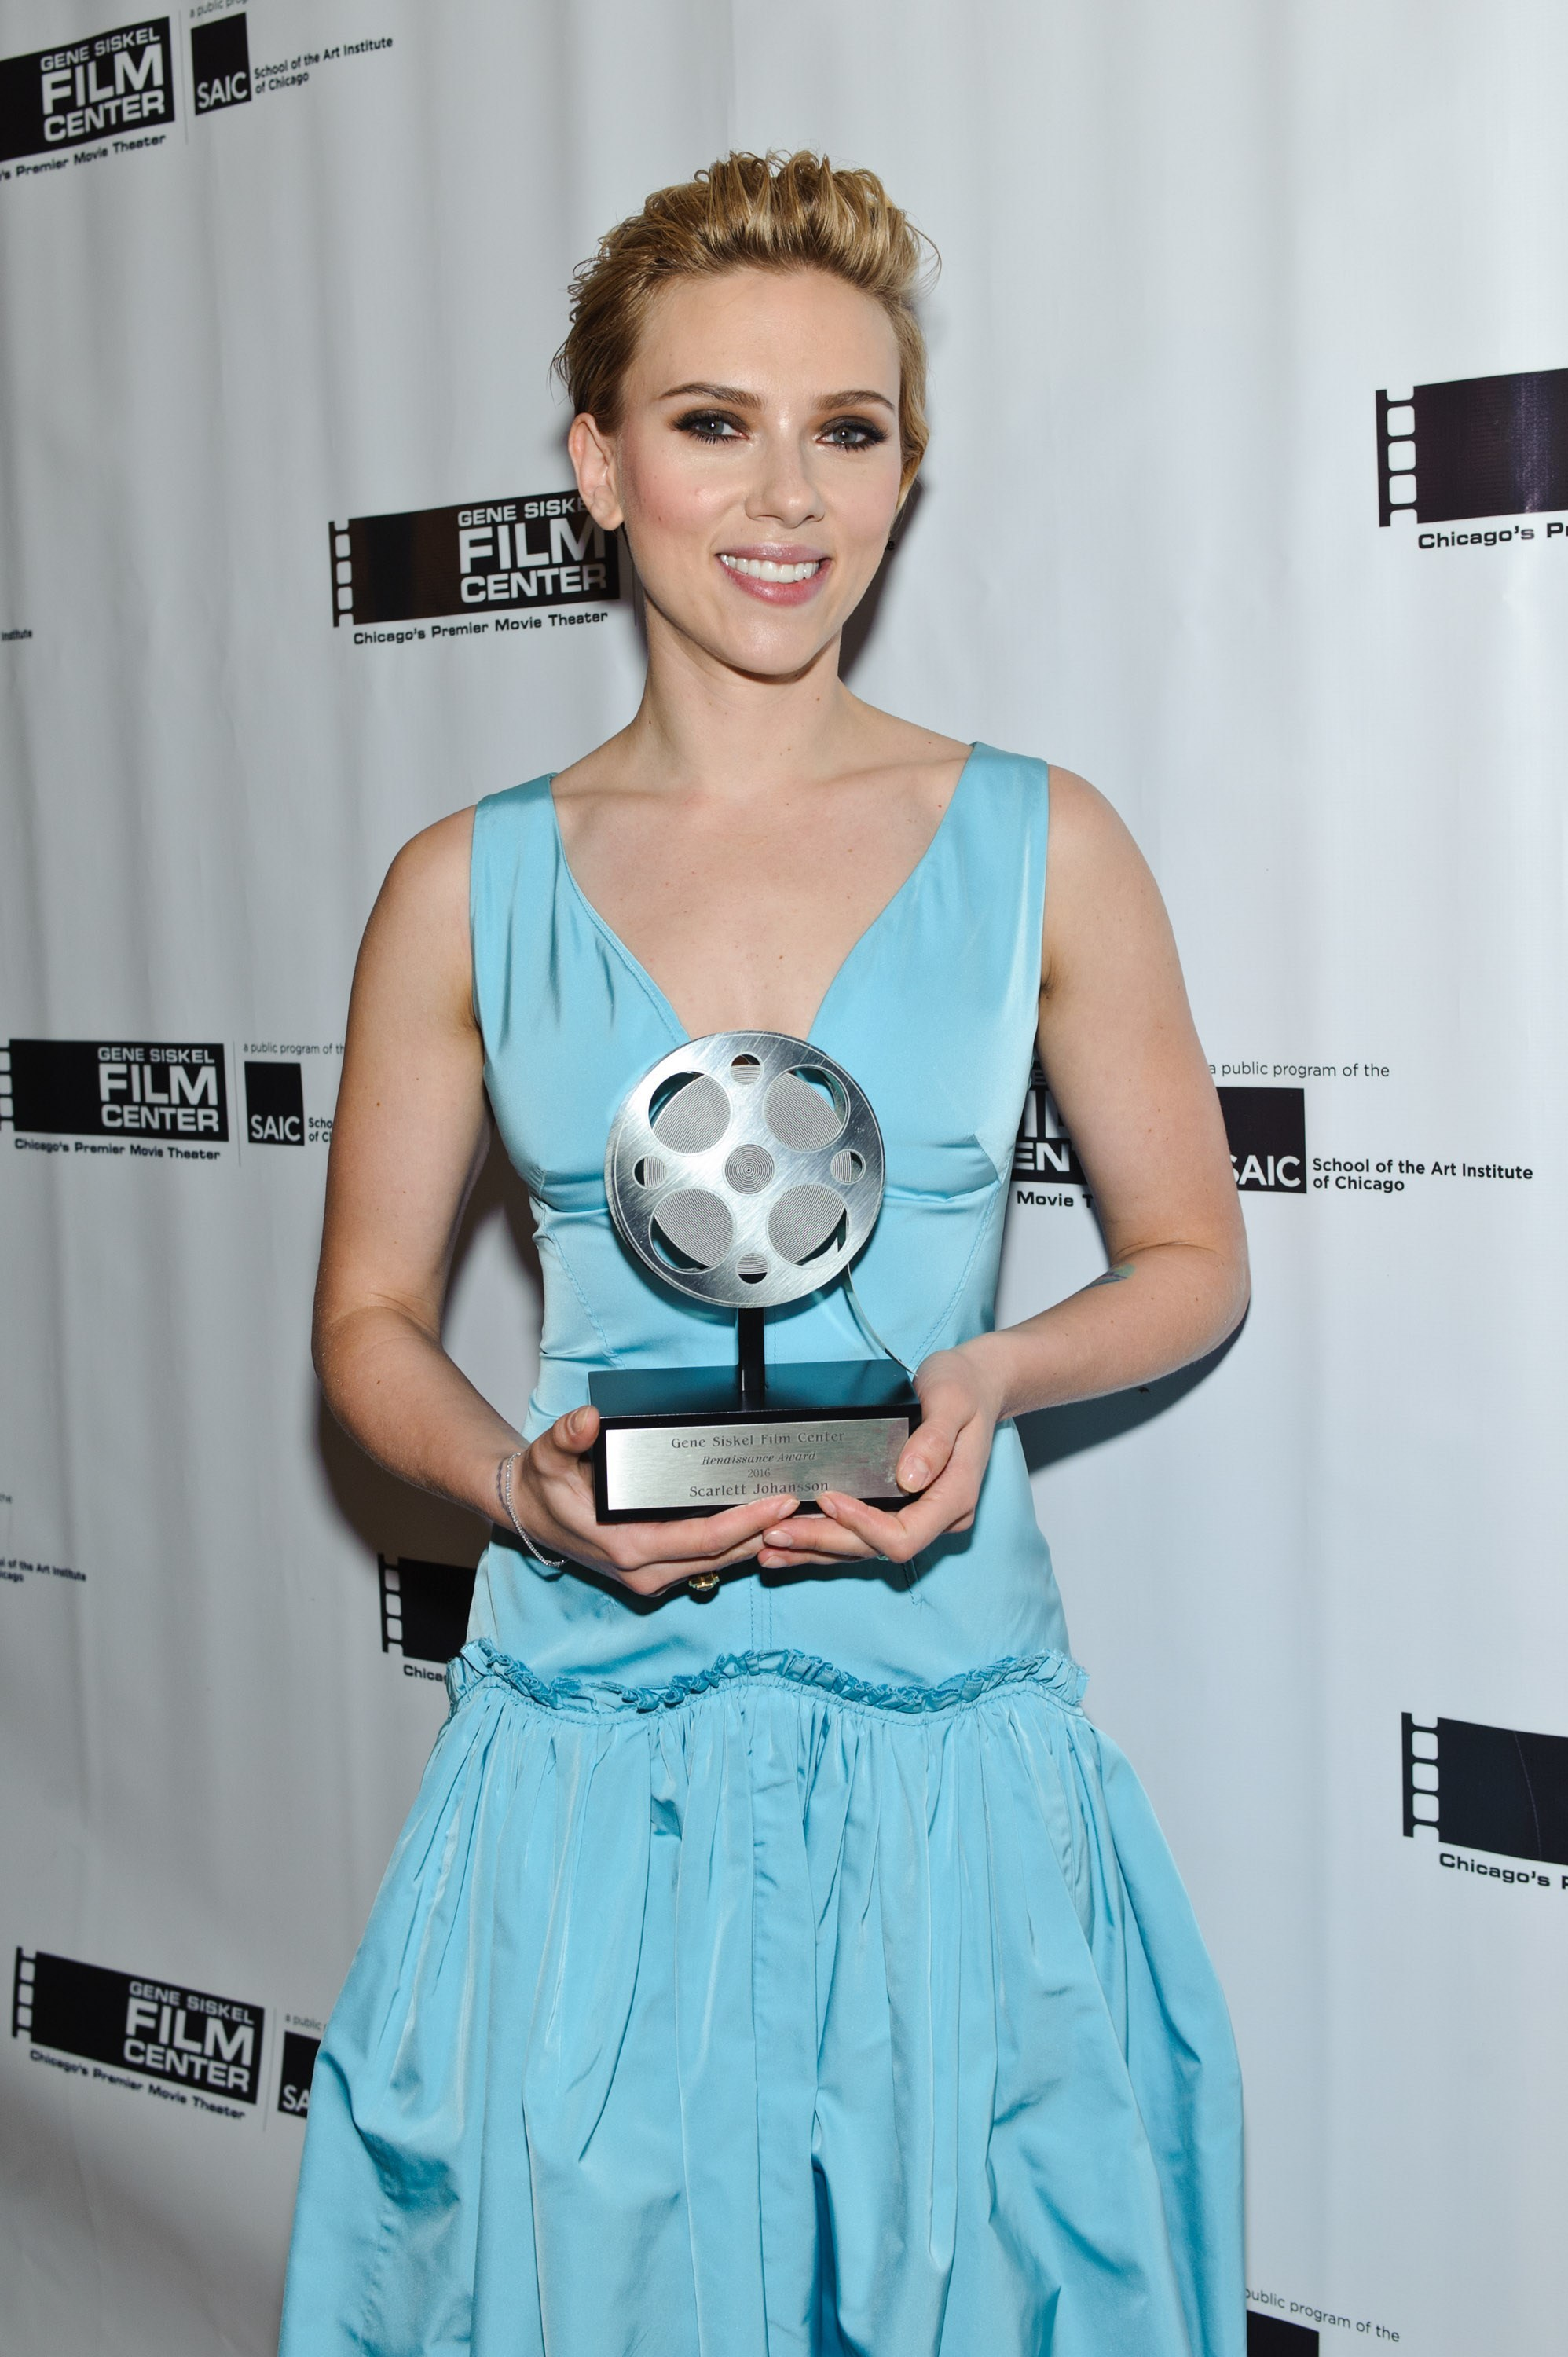 Scarlett Johansson admits highest grossing actress title is 'disappointing'